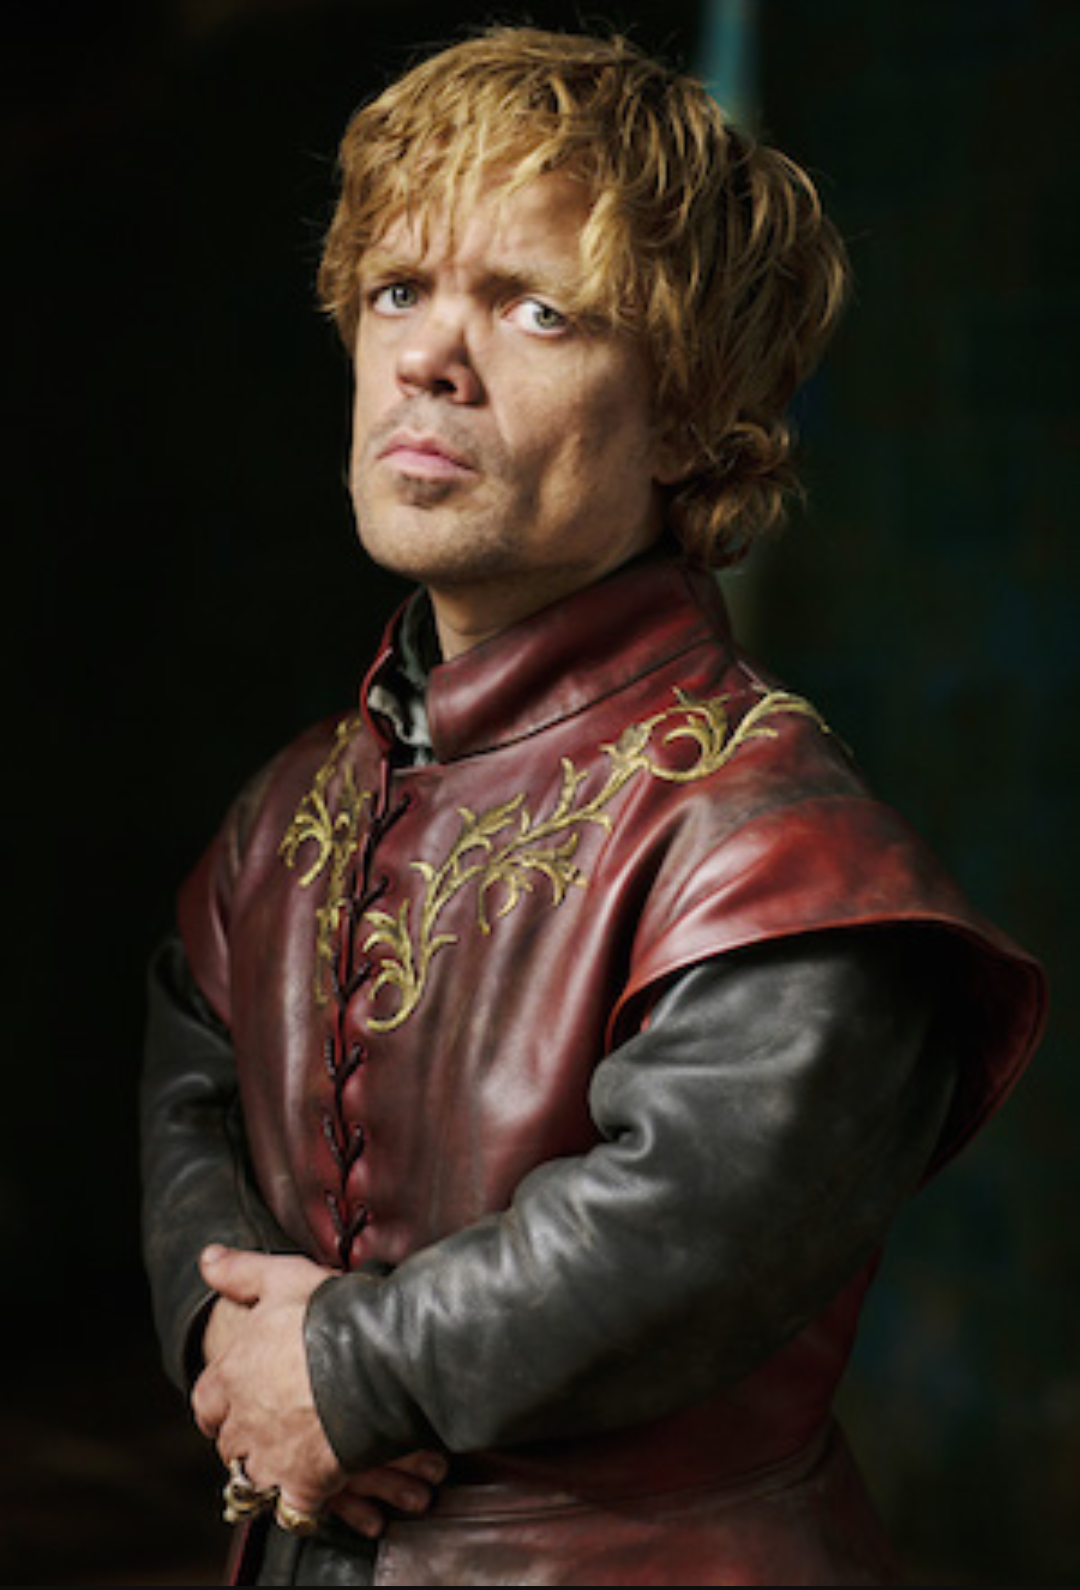 L'attore statunitense Peter Dinklage nei panni di Tyrion Lannister